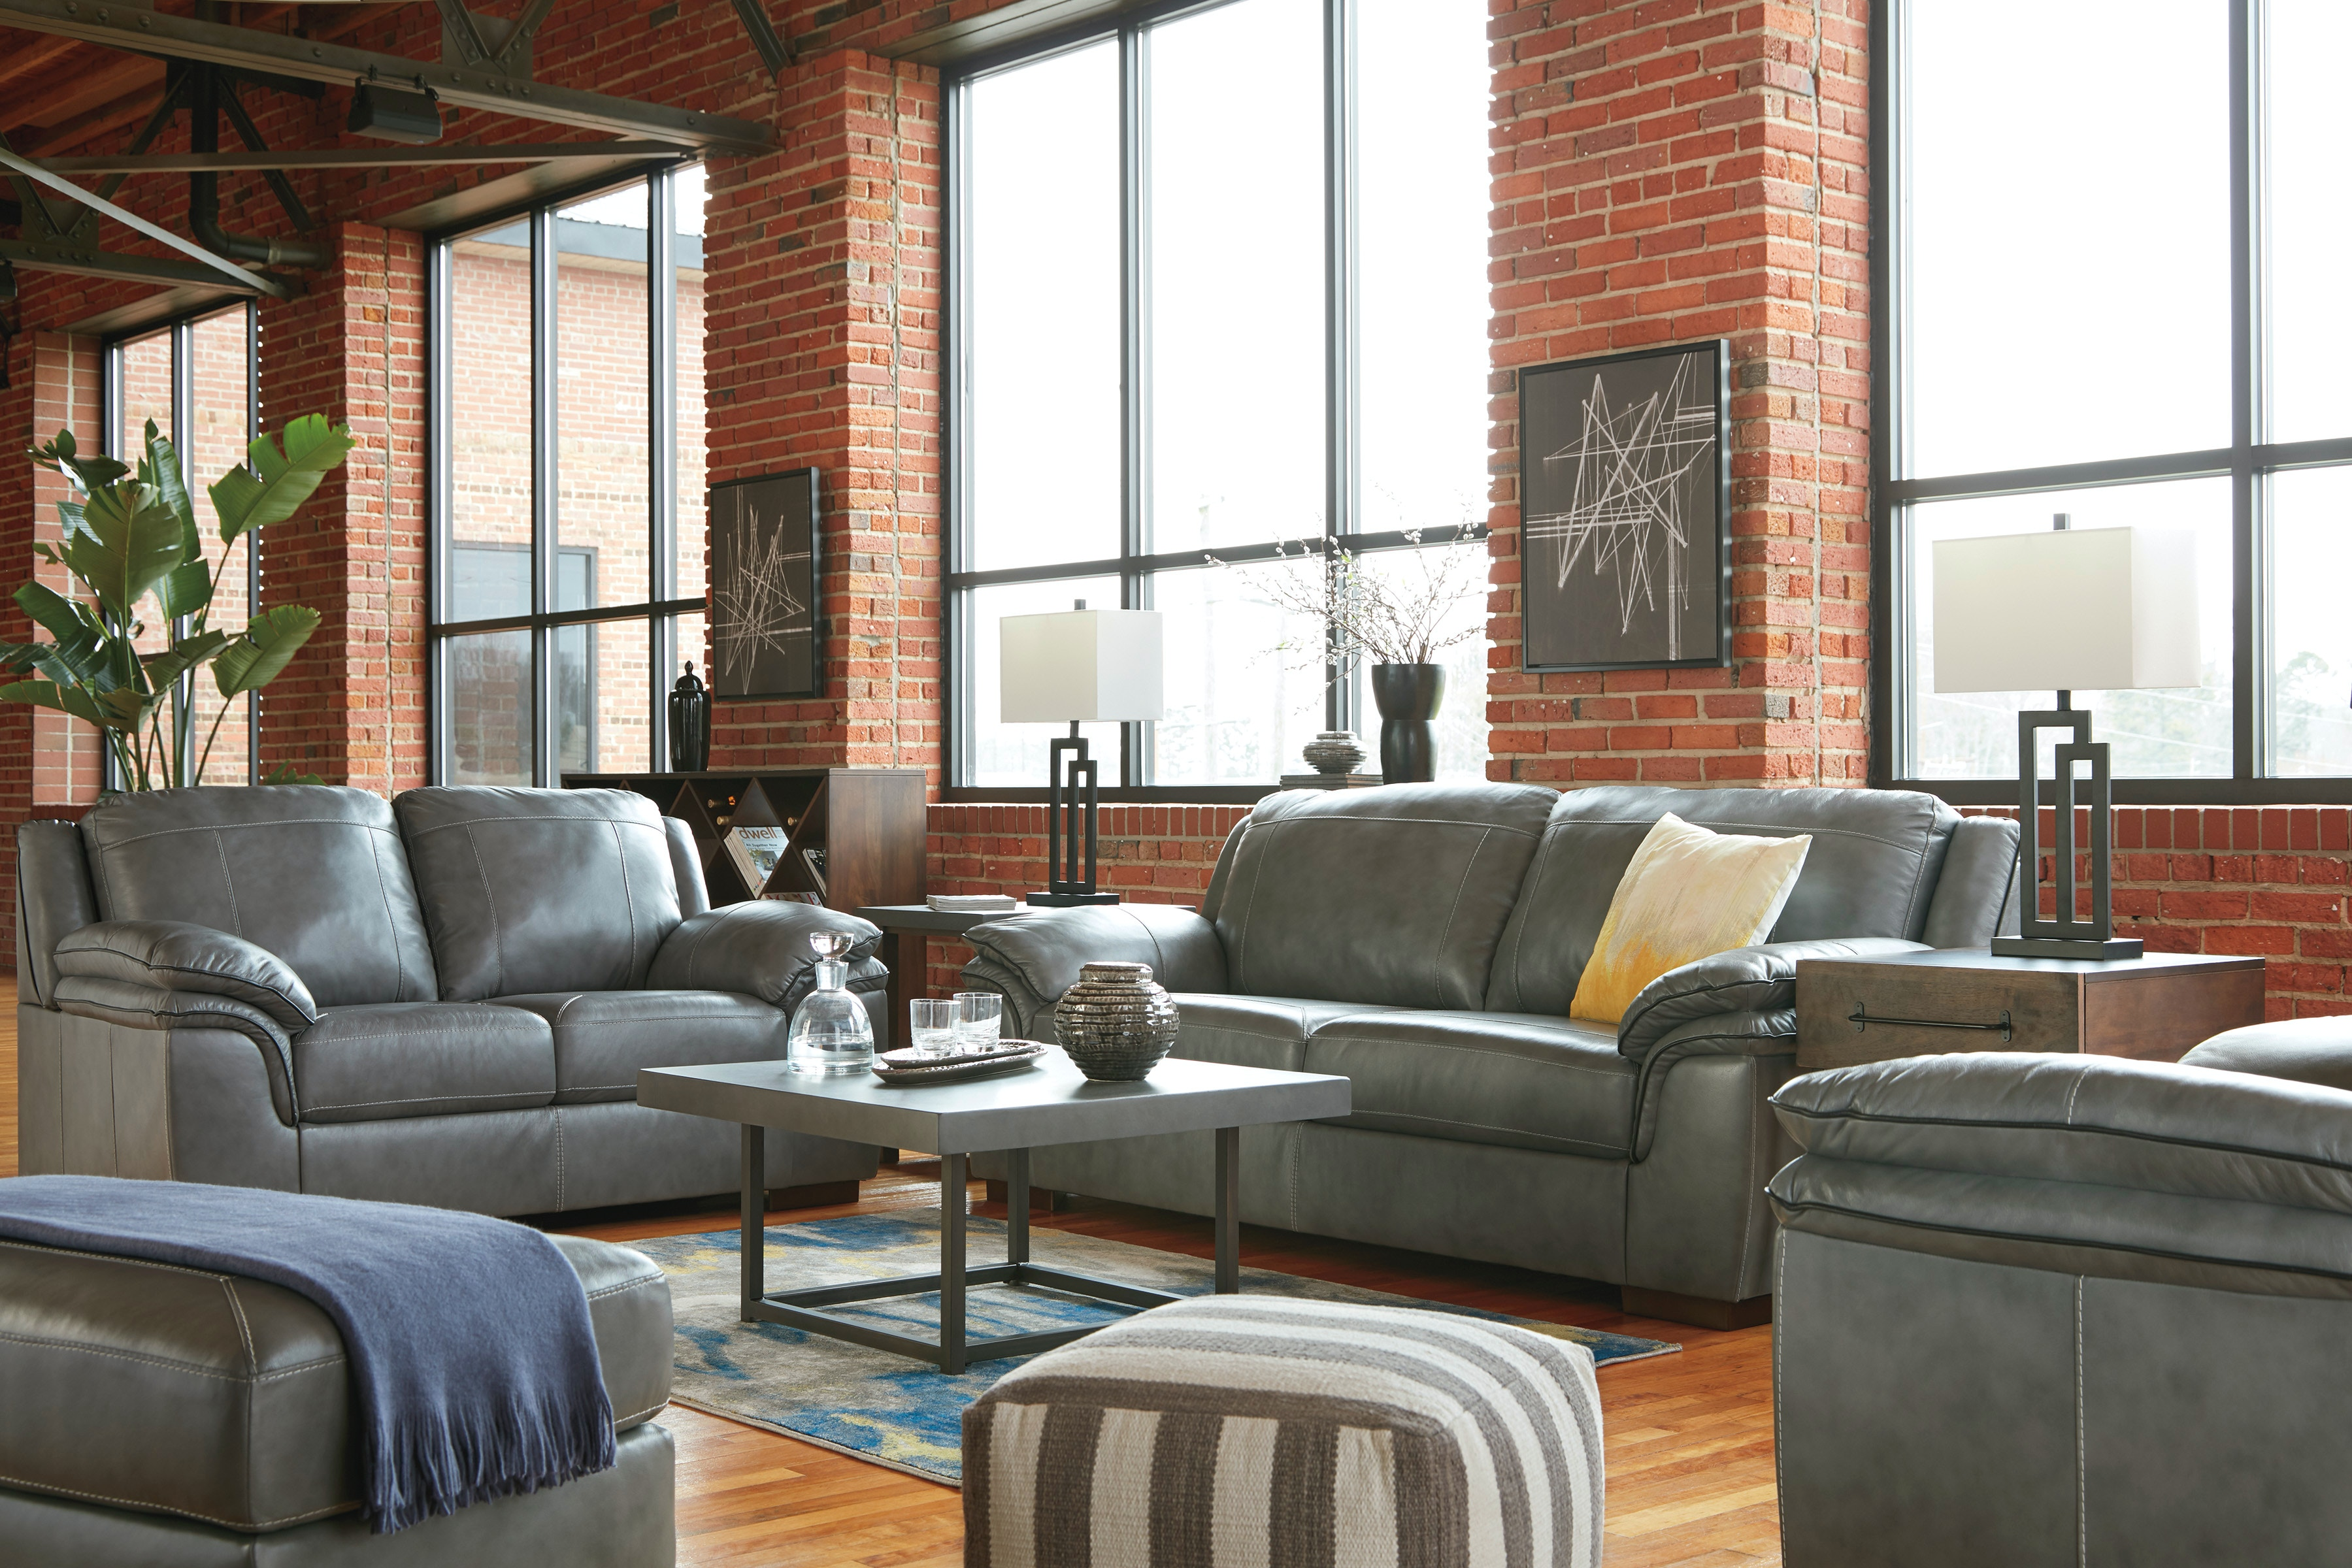 Signature Design By Ashley 3pc Islebrook Leather Living Room   100% Leather  Sofa/Love